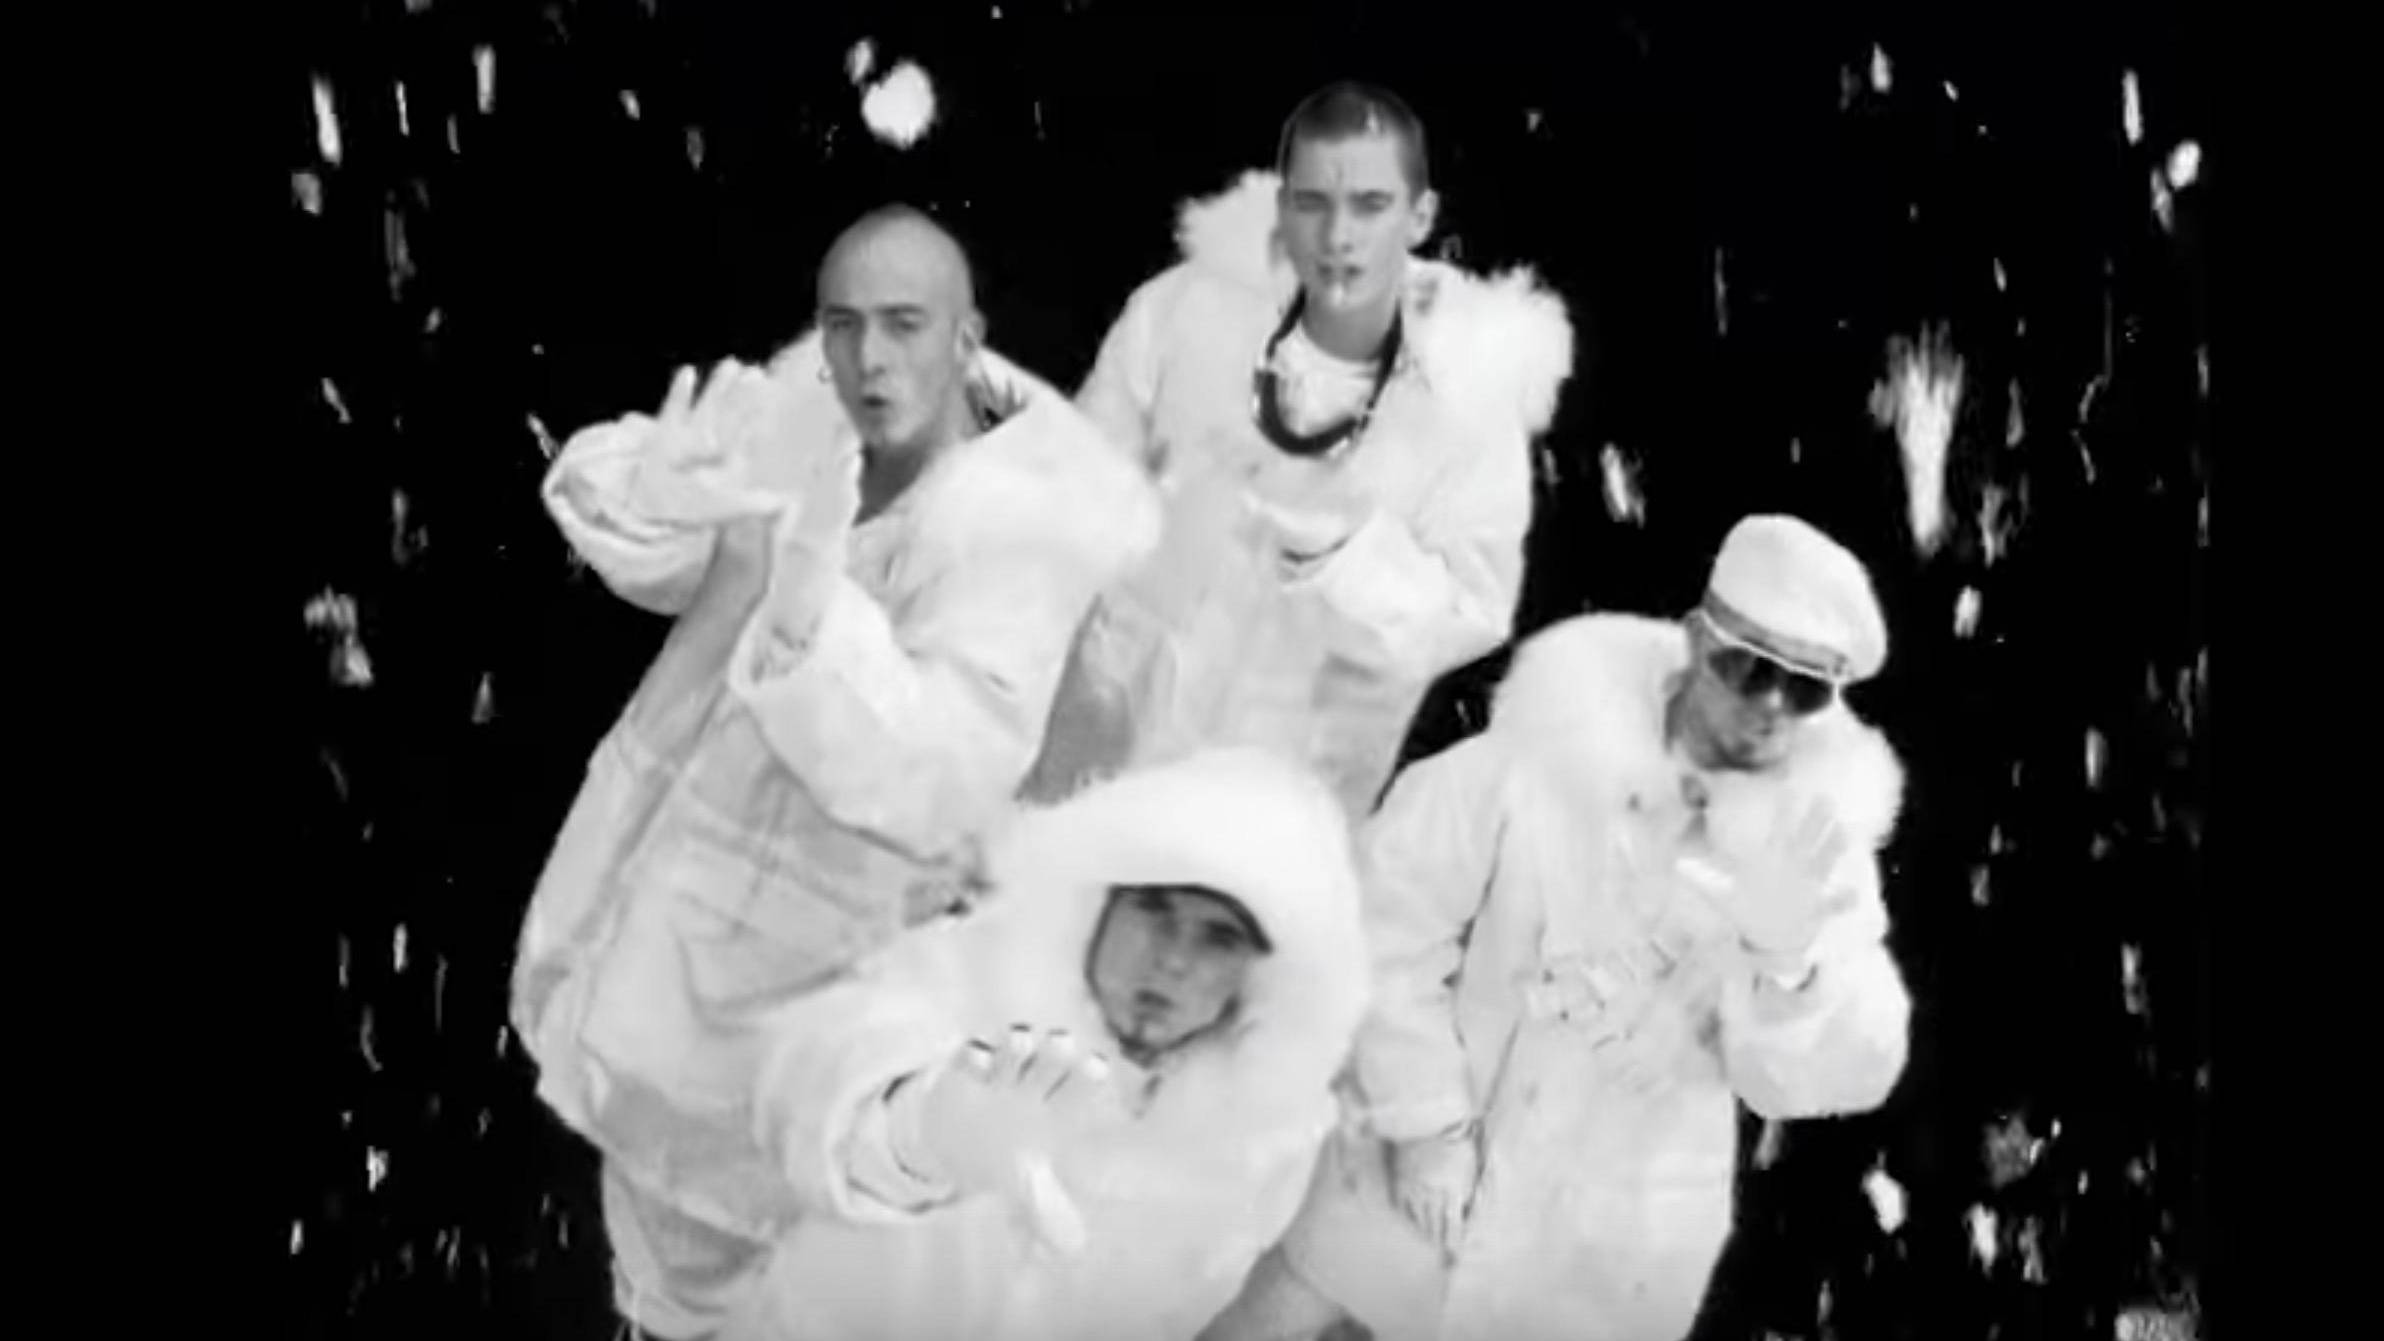 The Story of    'Stay Another Day' by East 17 - Smooth